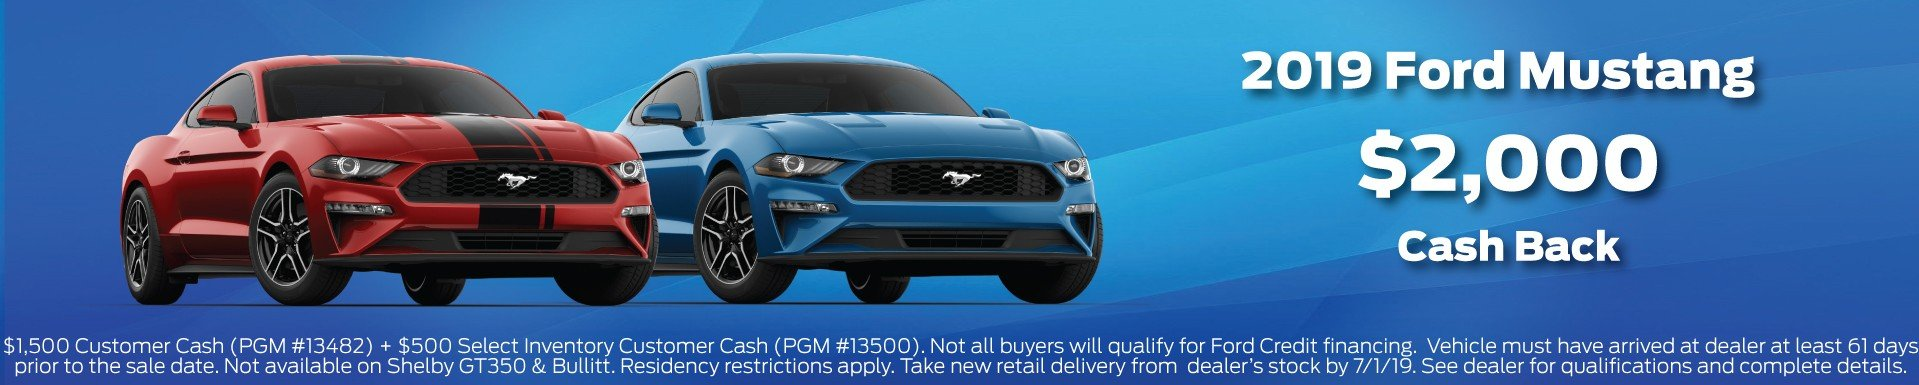 2019 Mustang Incentive 7-1-2019